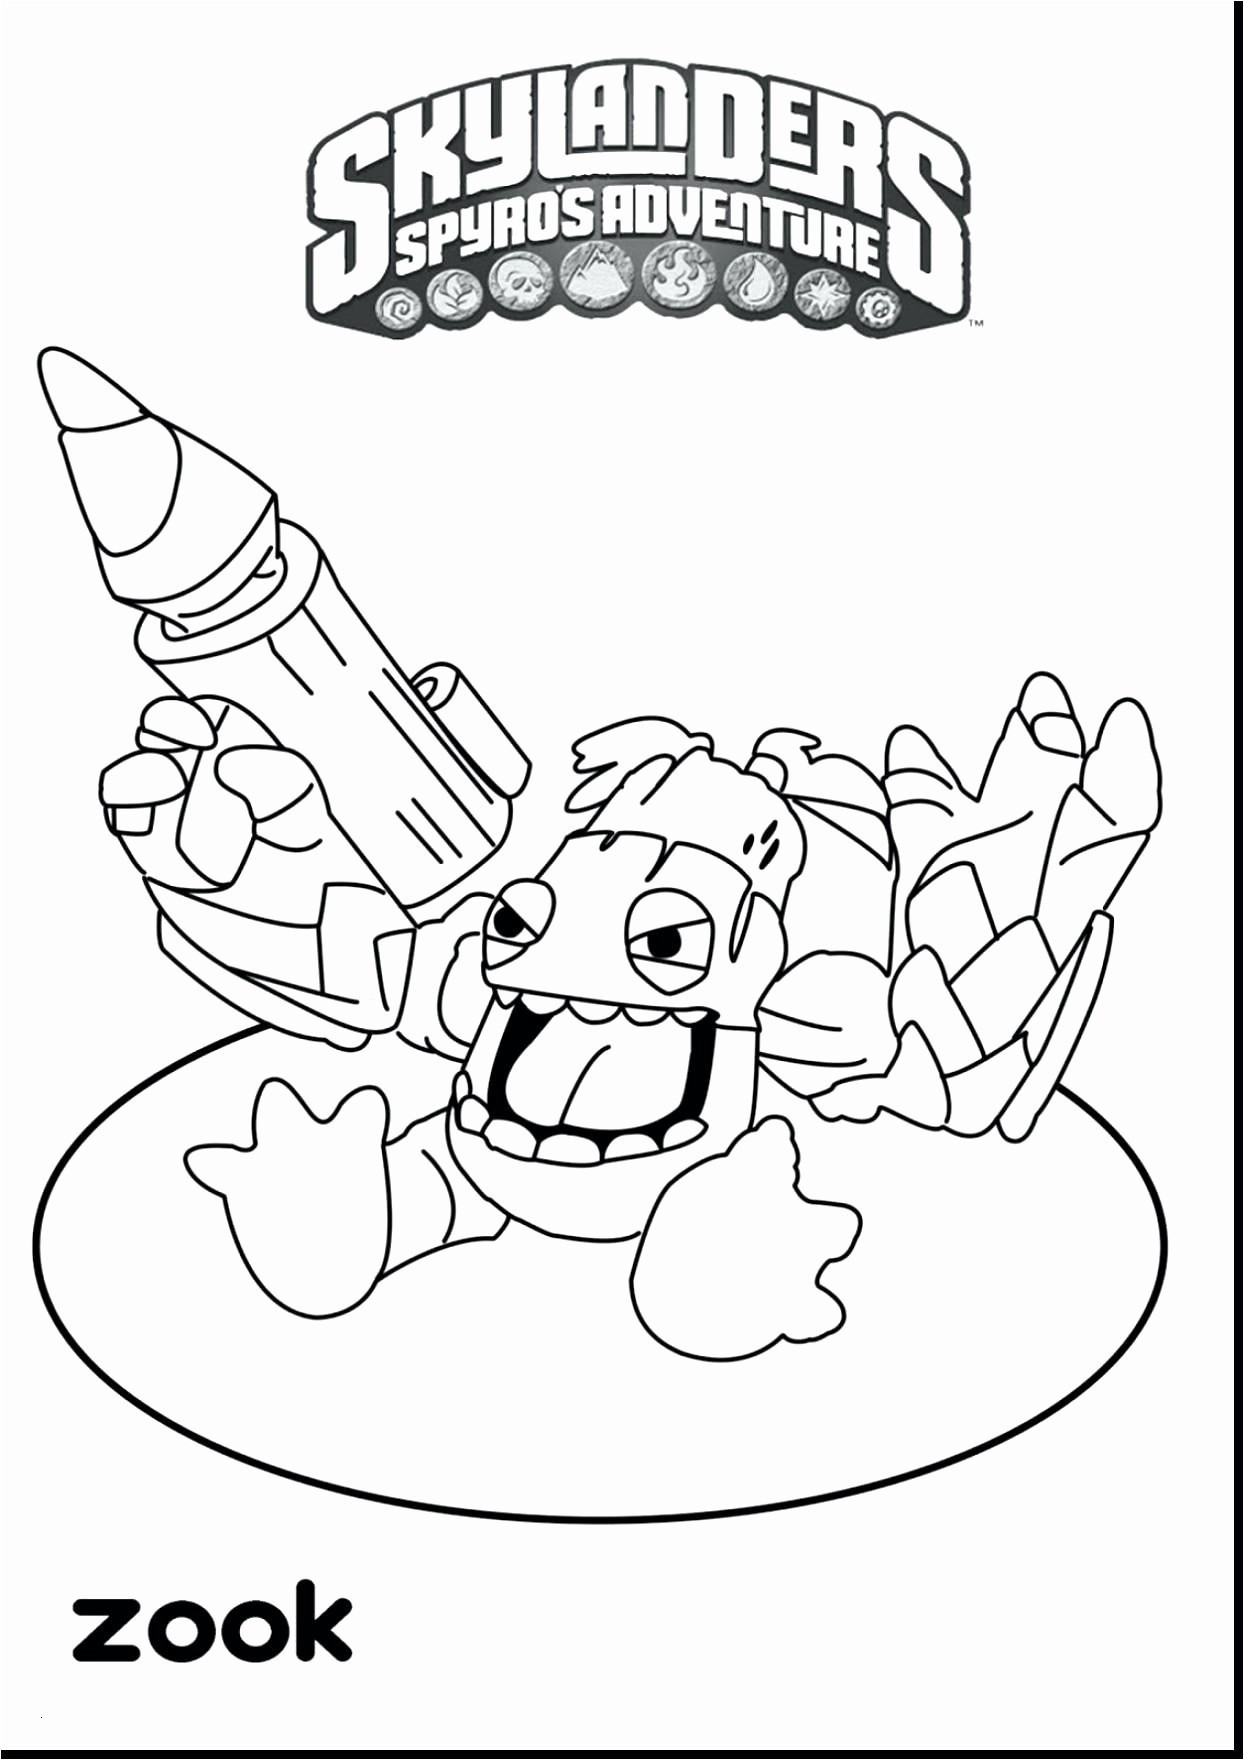 coloring pages bible stories Collection-Bible Coloring Pages Kids Coloring Pages for Bible Inspirational Fresh Bible Coloring Pages 13-c